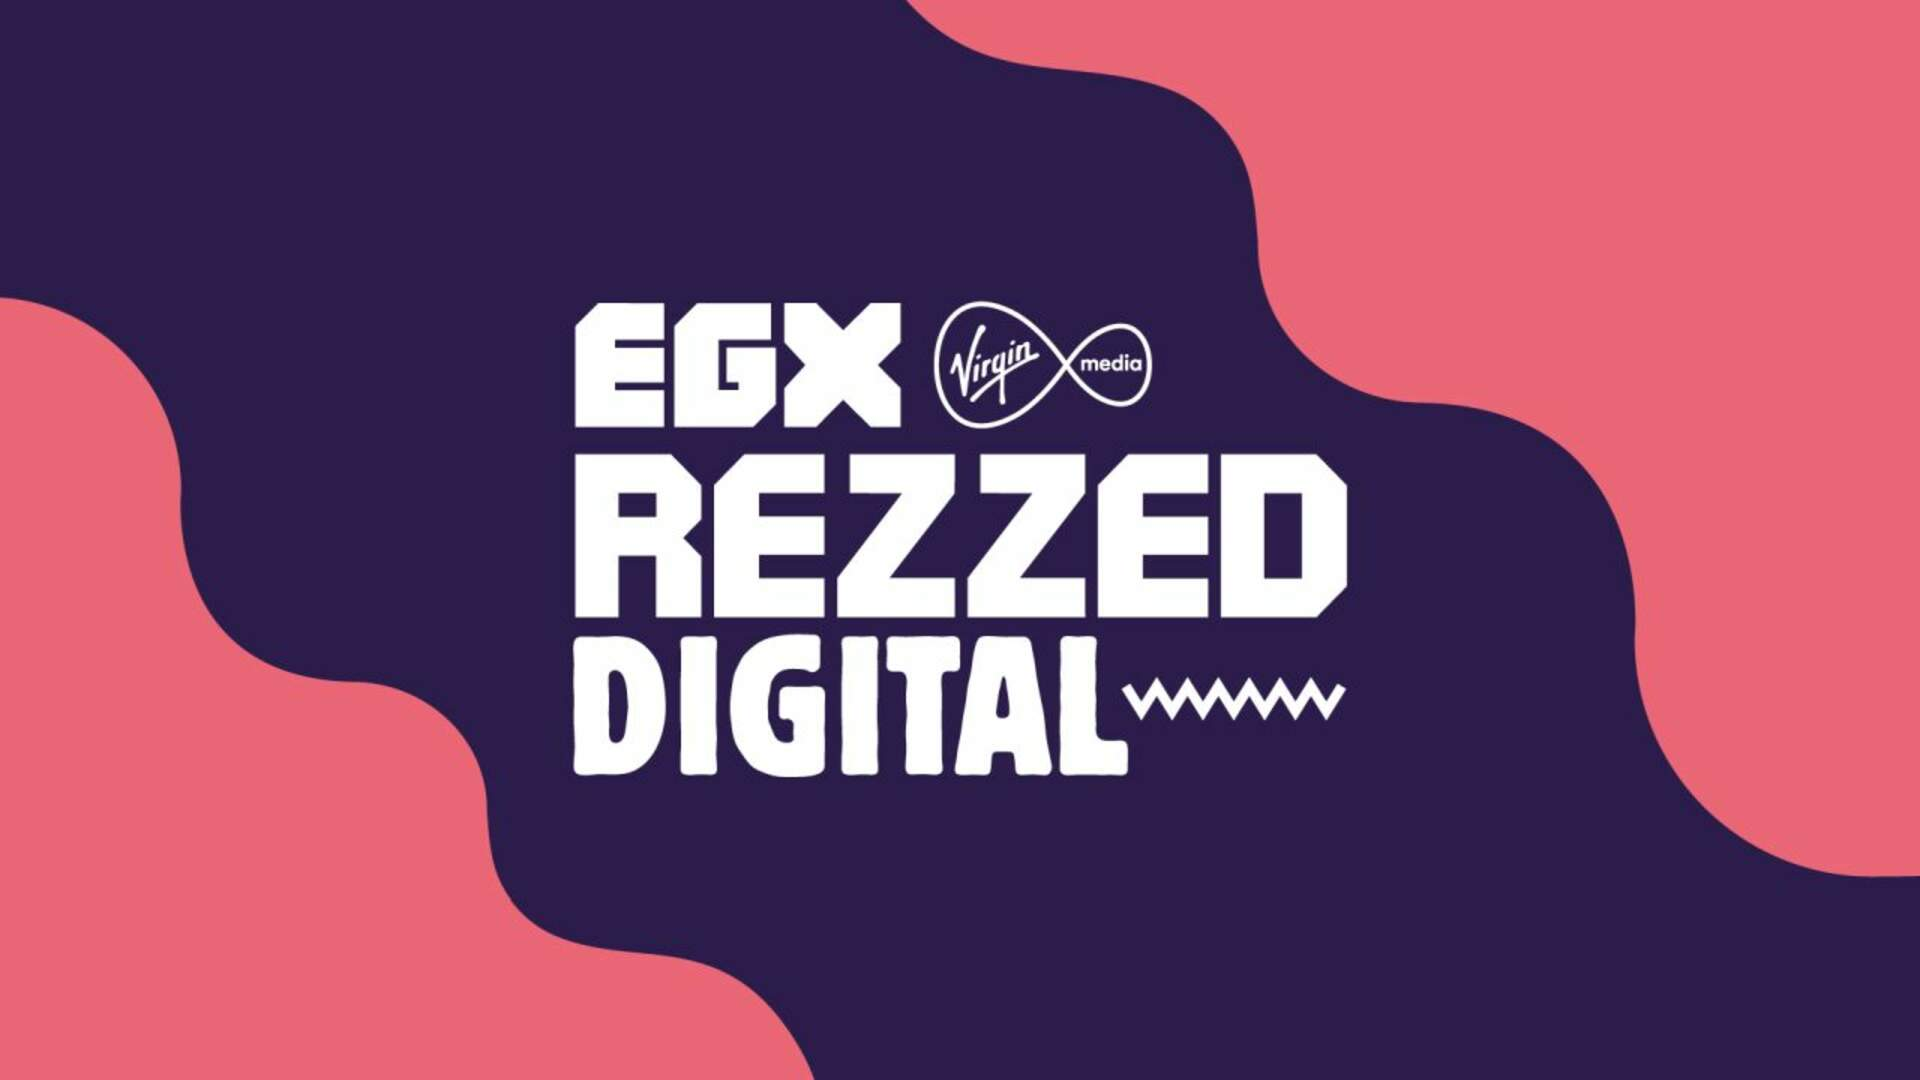 EGX Rezzed Digital is Live, Showcasing Tons of Indies and Live Let's Plays